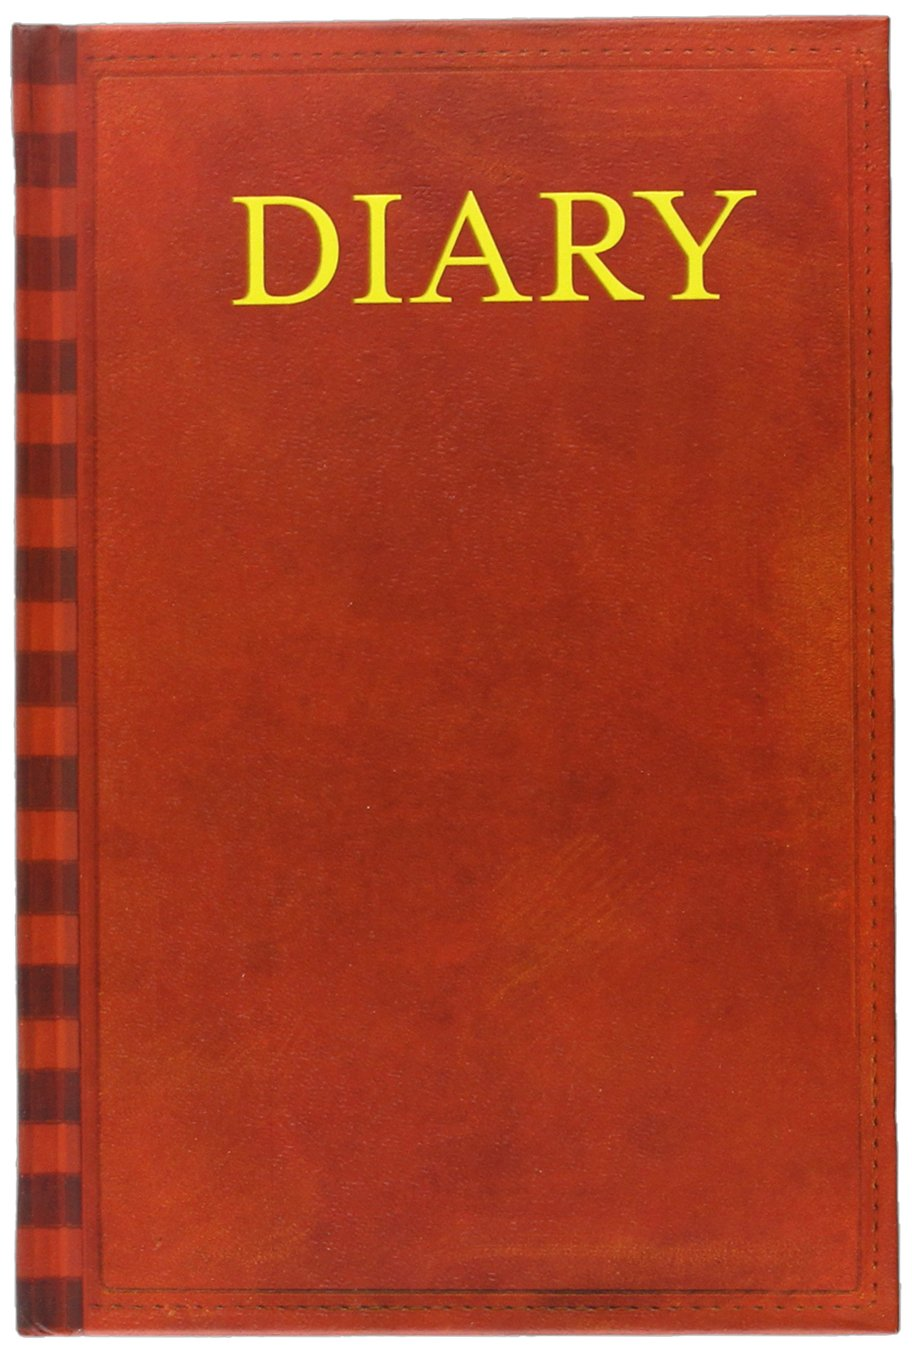 Diary of a wimpy kid book journal mudpuppy jeff kinney diary of a wimpy kid book journal mudpuppy jeff kinney 9780735329874 amazon books solutioingenieria